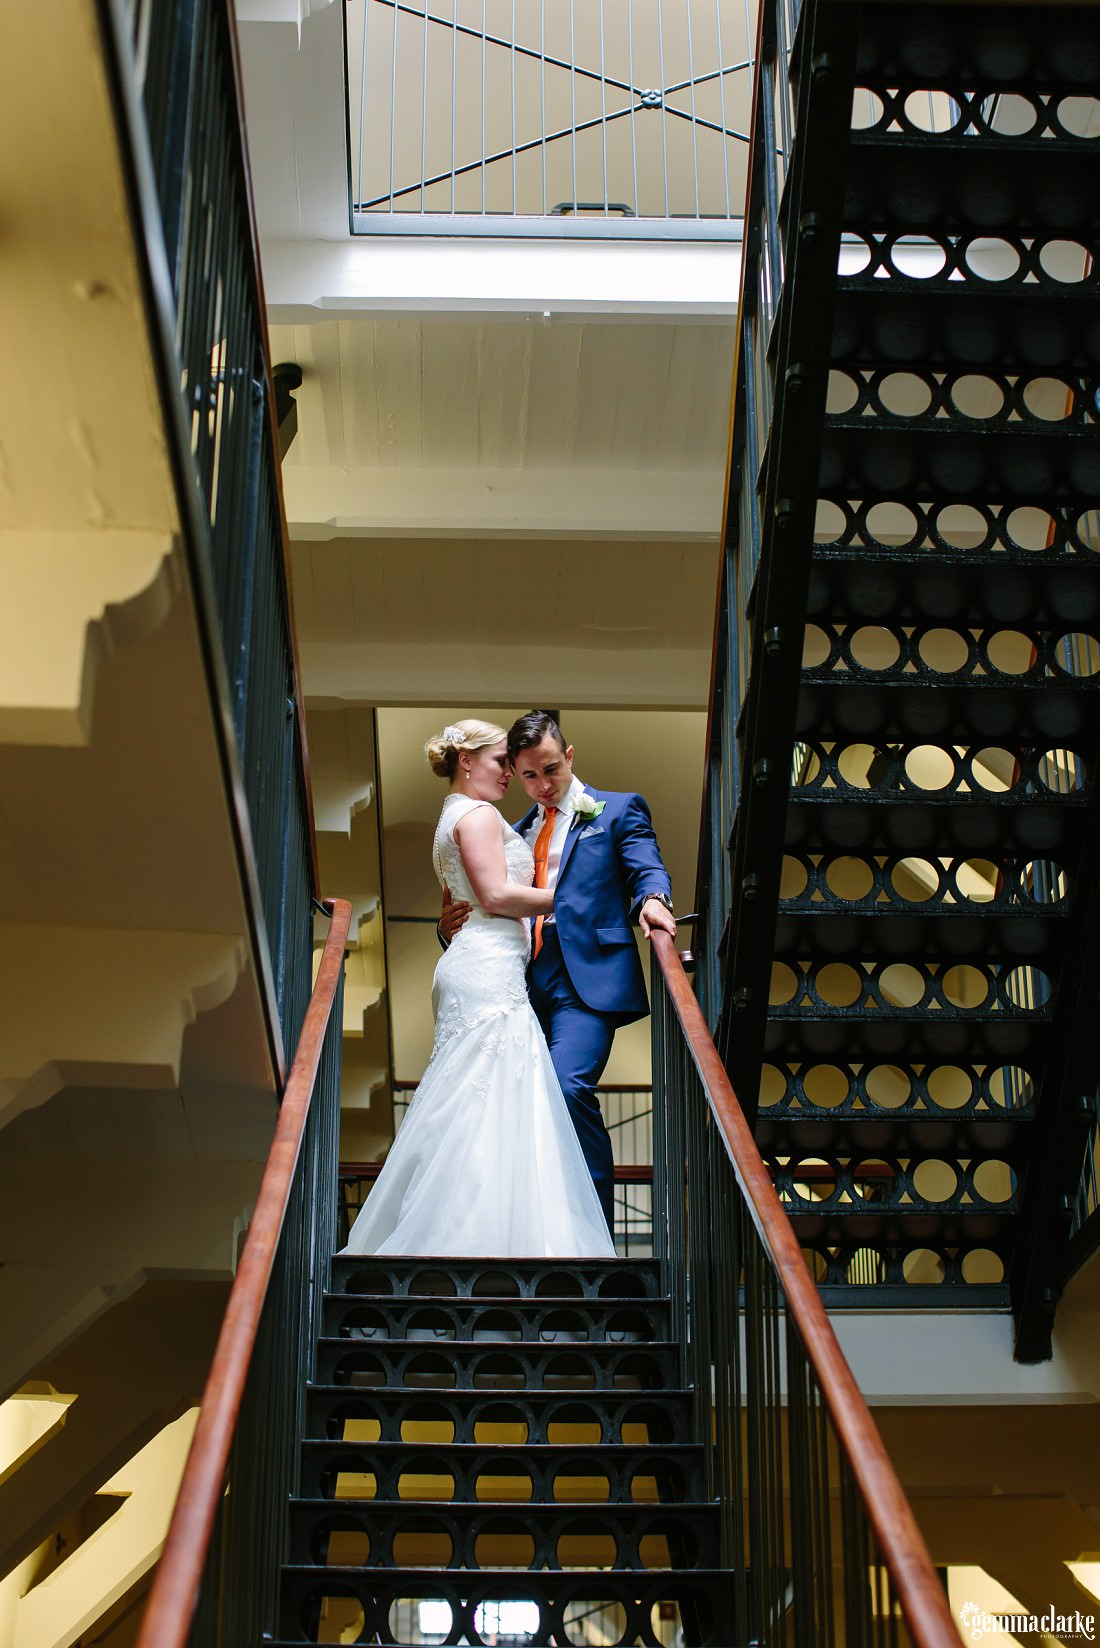 A groom holding his bride close as they stand at the top of a flight of stairs